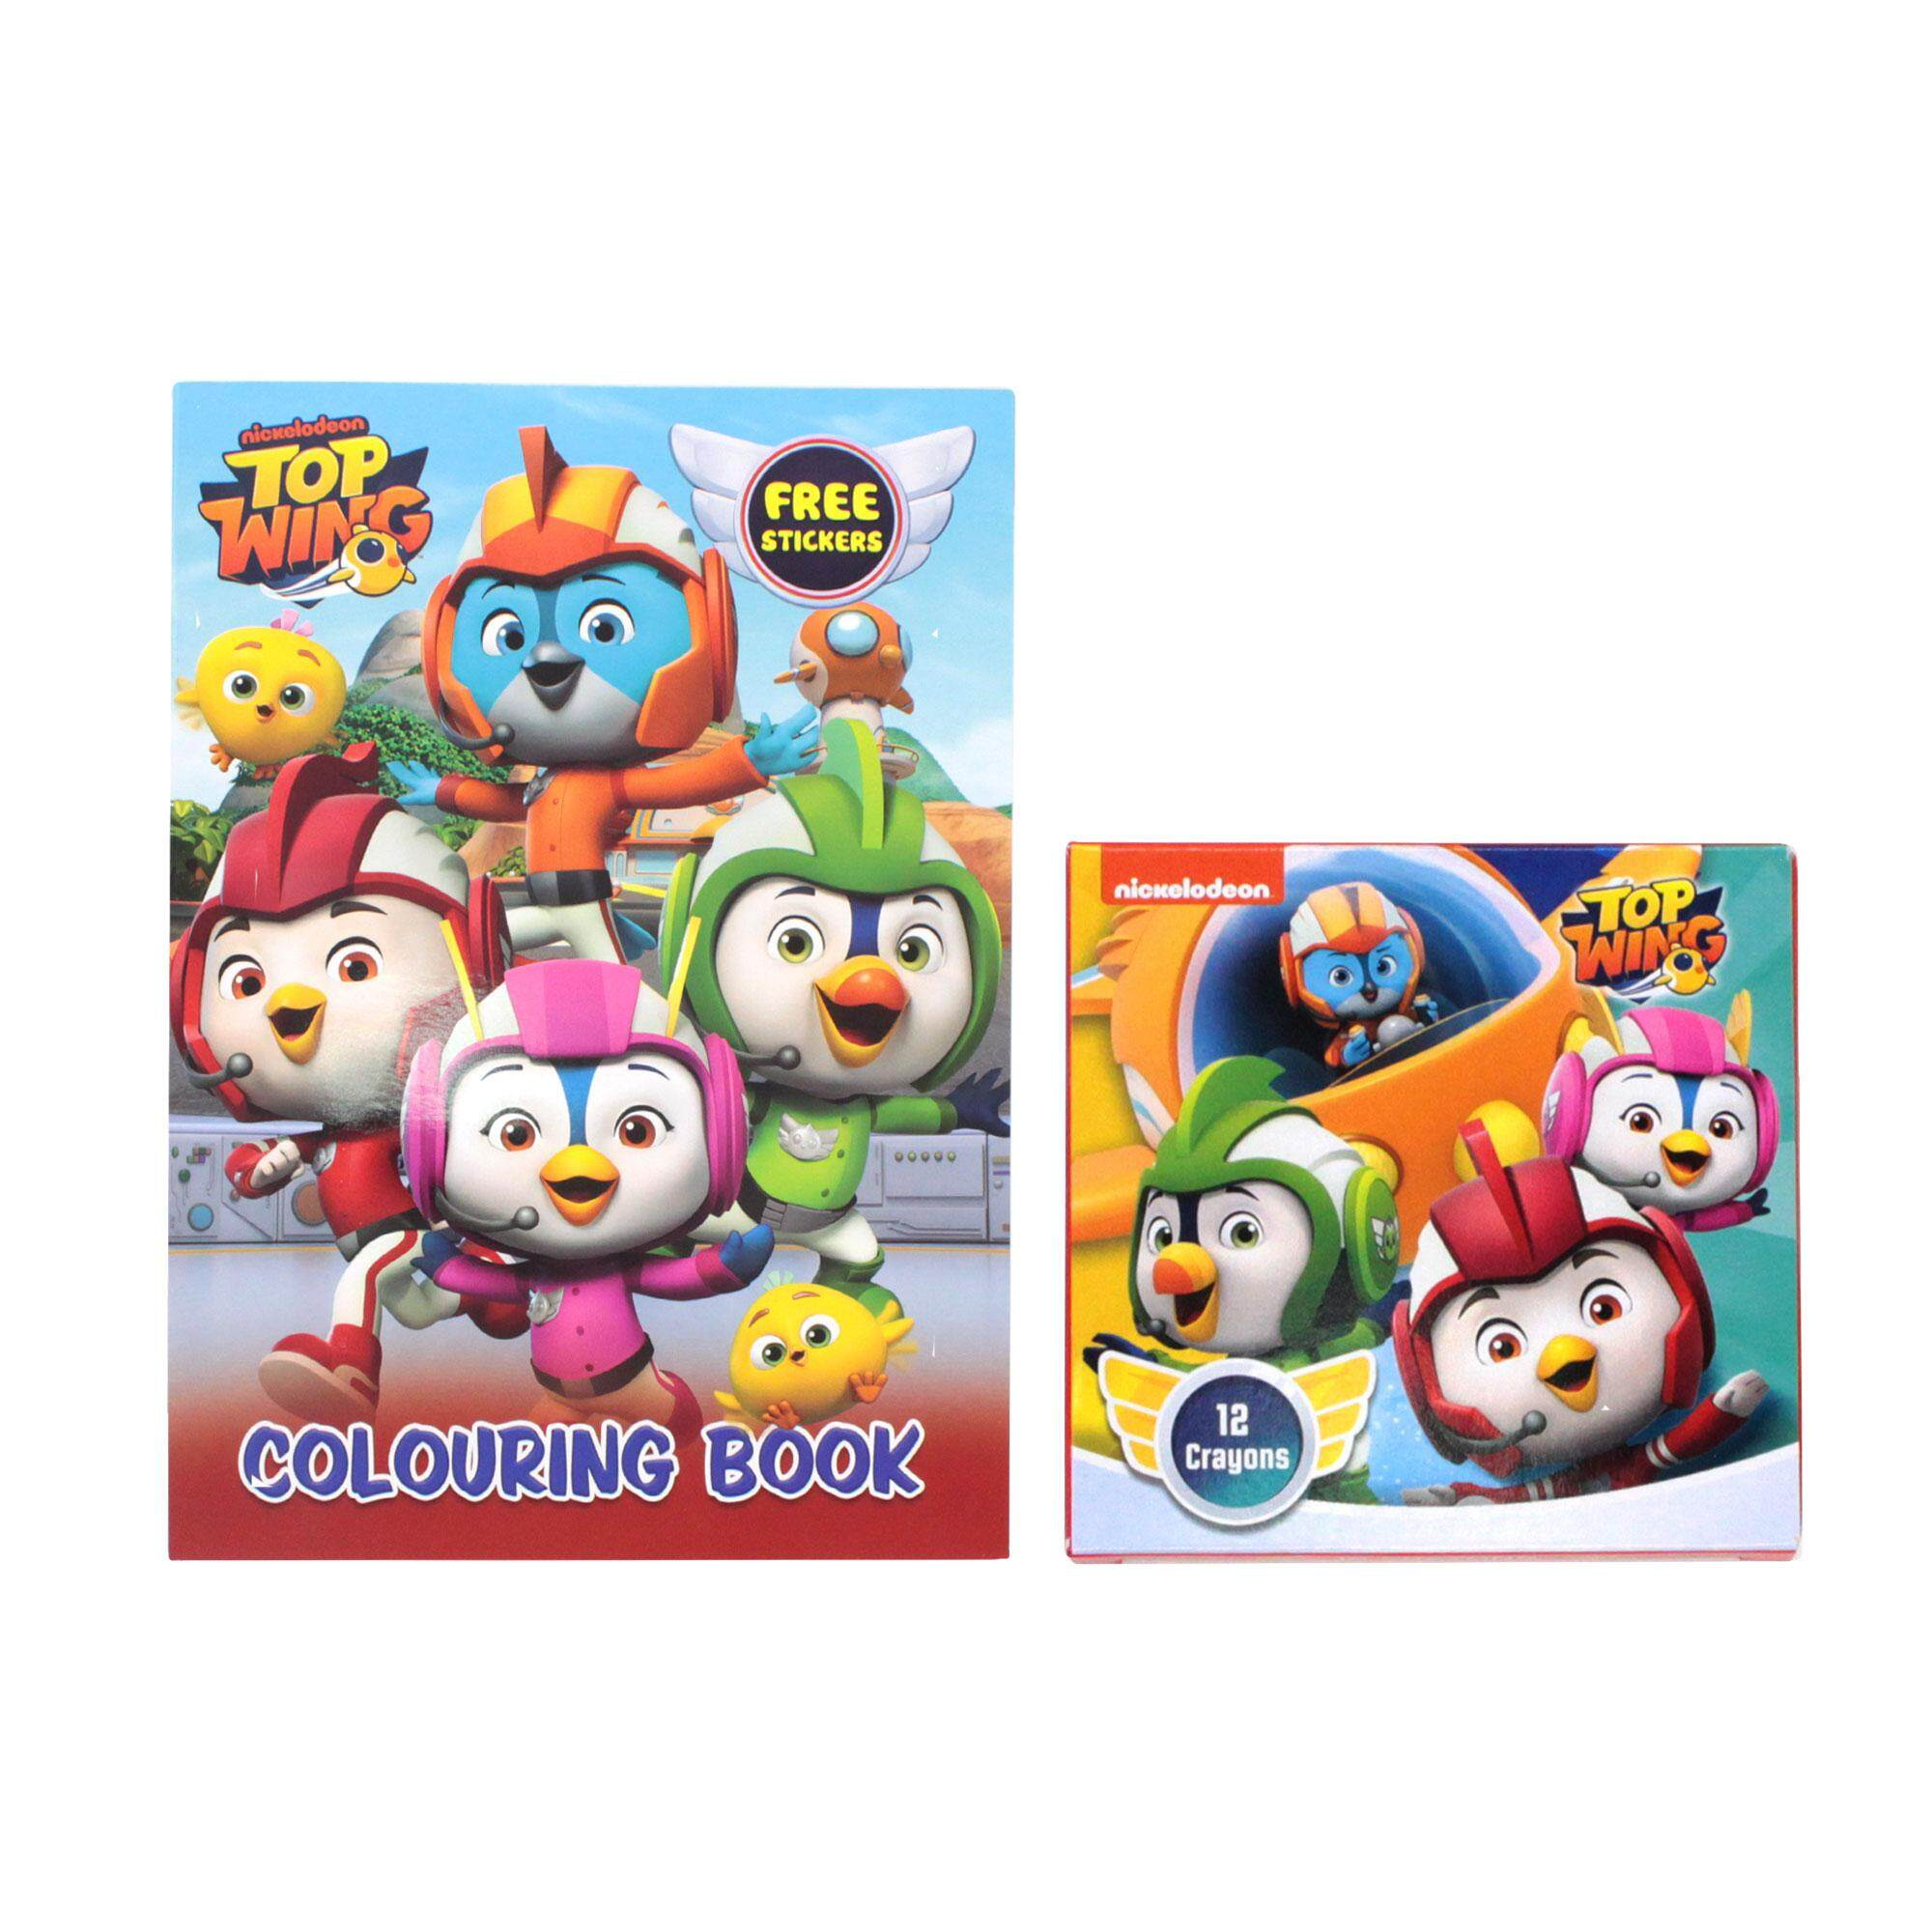 Top Wing Coloring Book with Sticker & Crayon Set